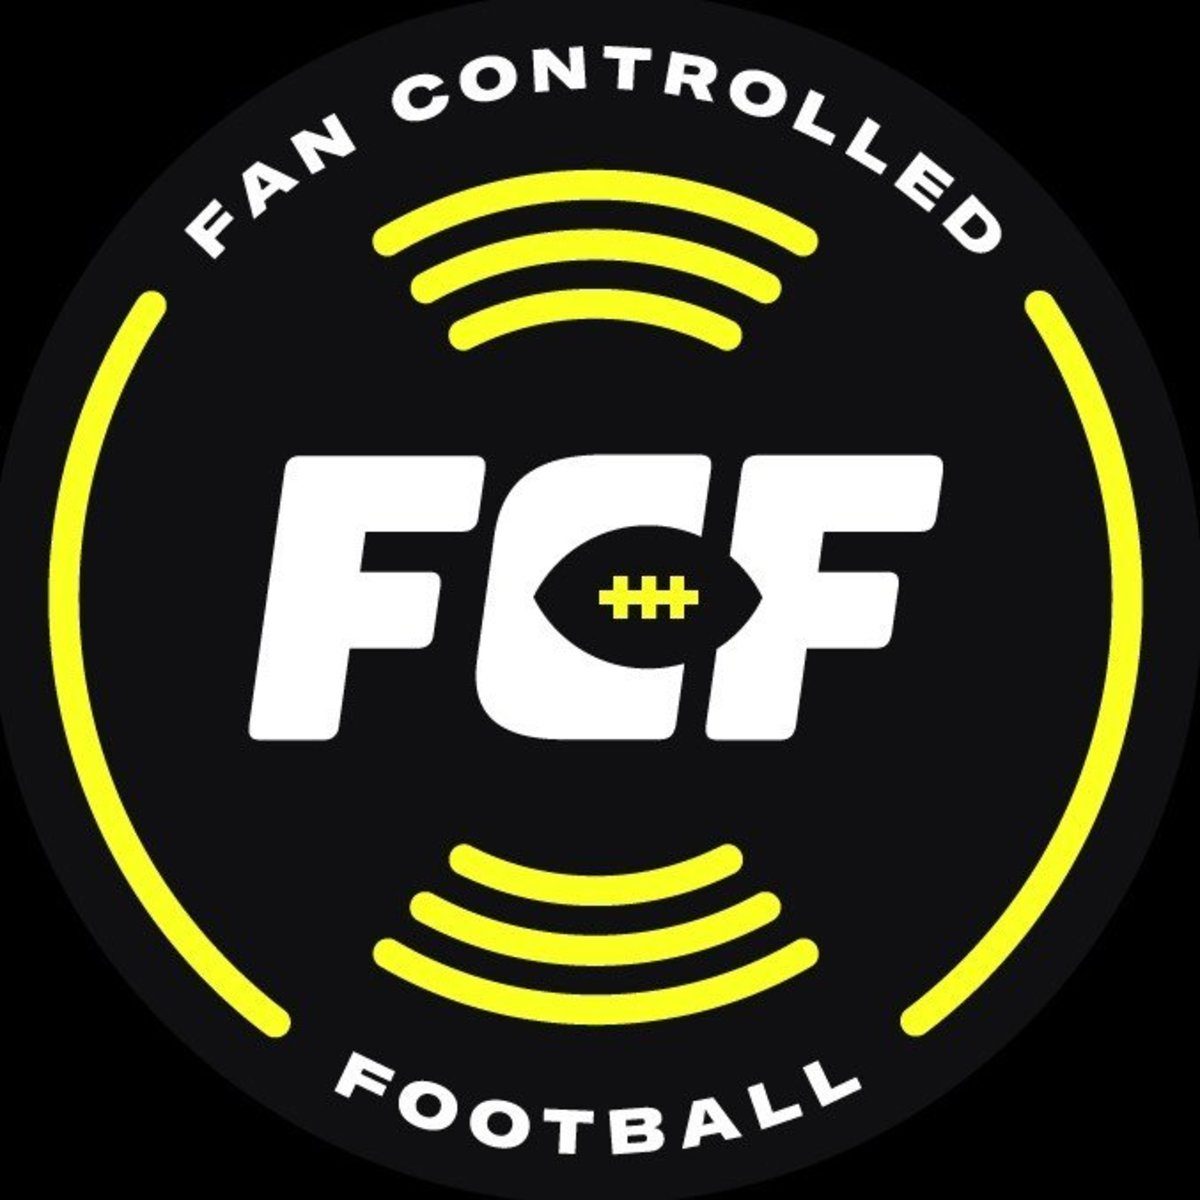 Fan Controlled Football (FCF) Rankings - The NFL Draft Bible on Sports Illustrated: The Leading Authority on the NFL Draft